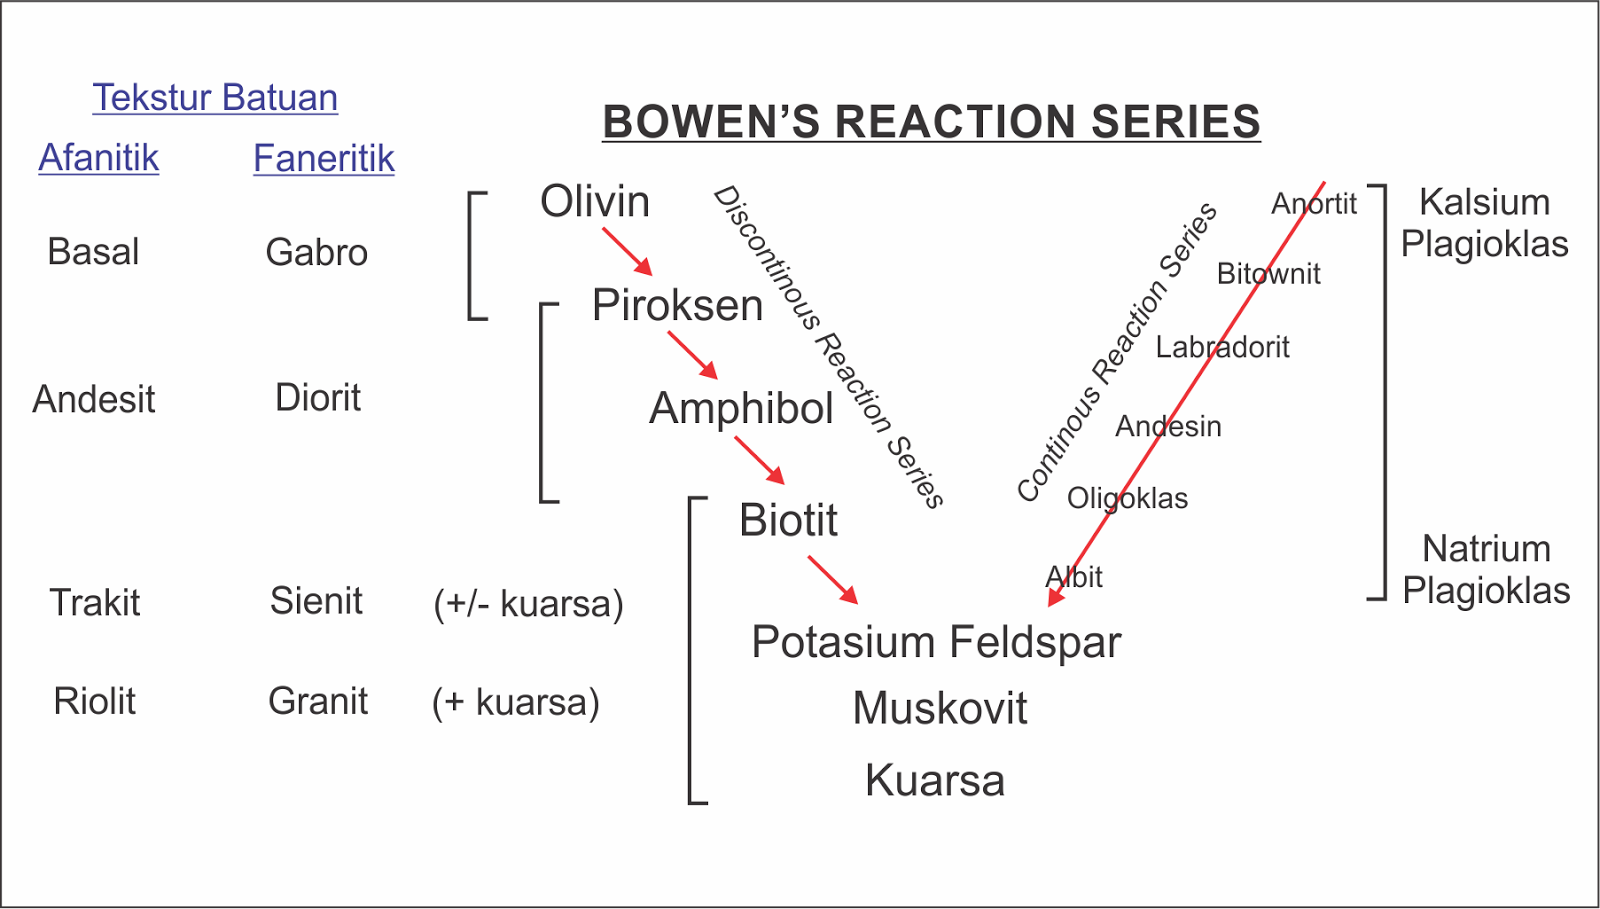 small resolution of brs bowen s reaction series dasar ilmu dalam studi batuan dan bowen reaction diagram